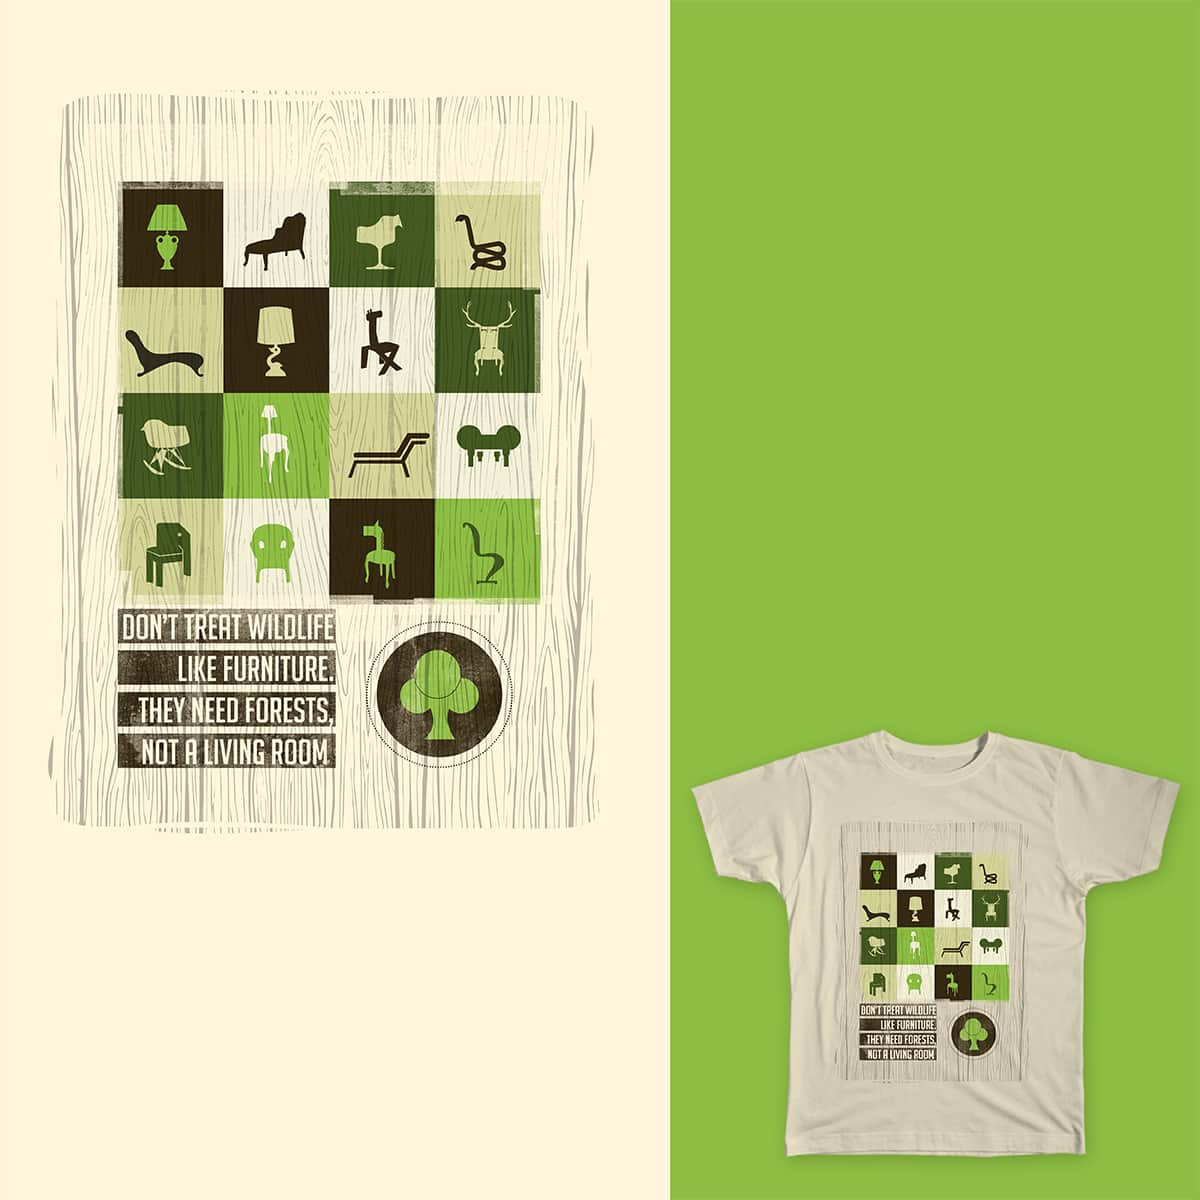 save forests. by rppatel on Threadless